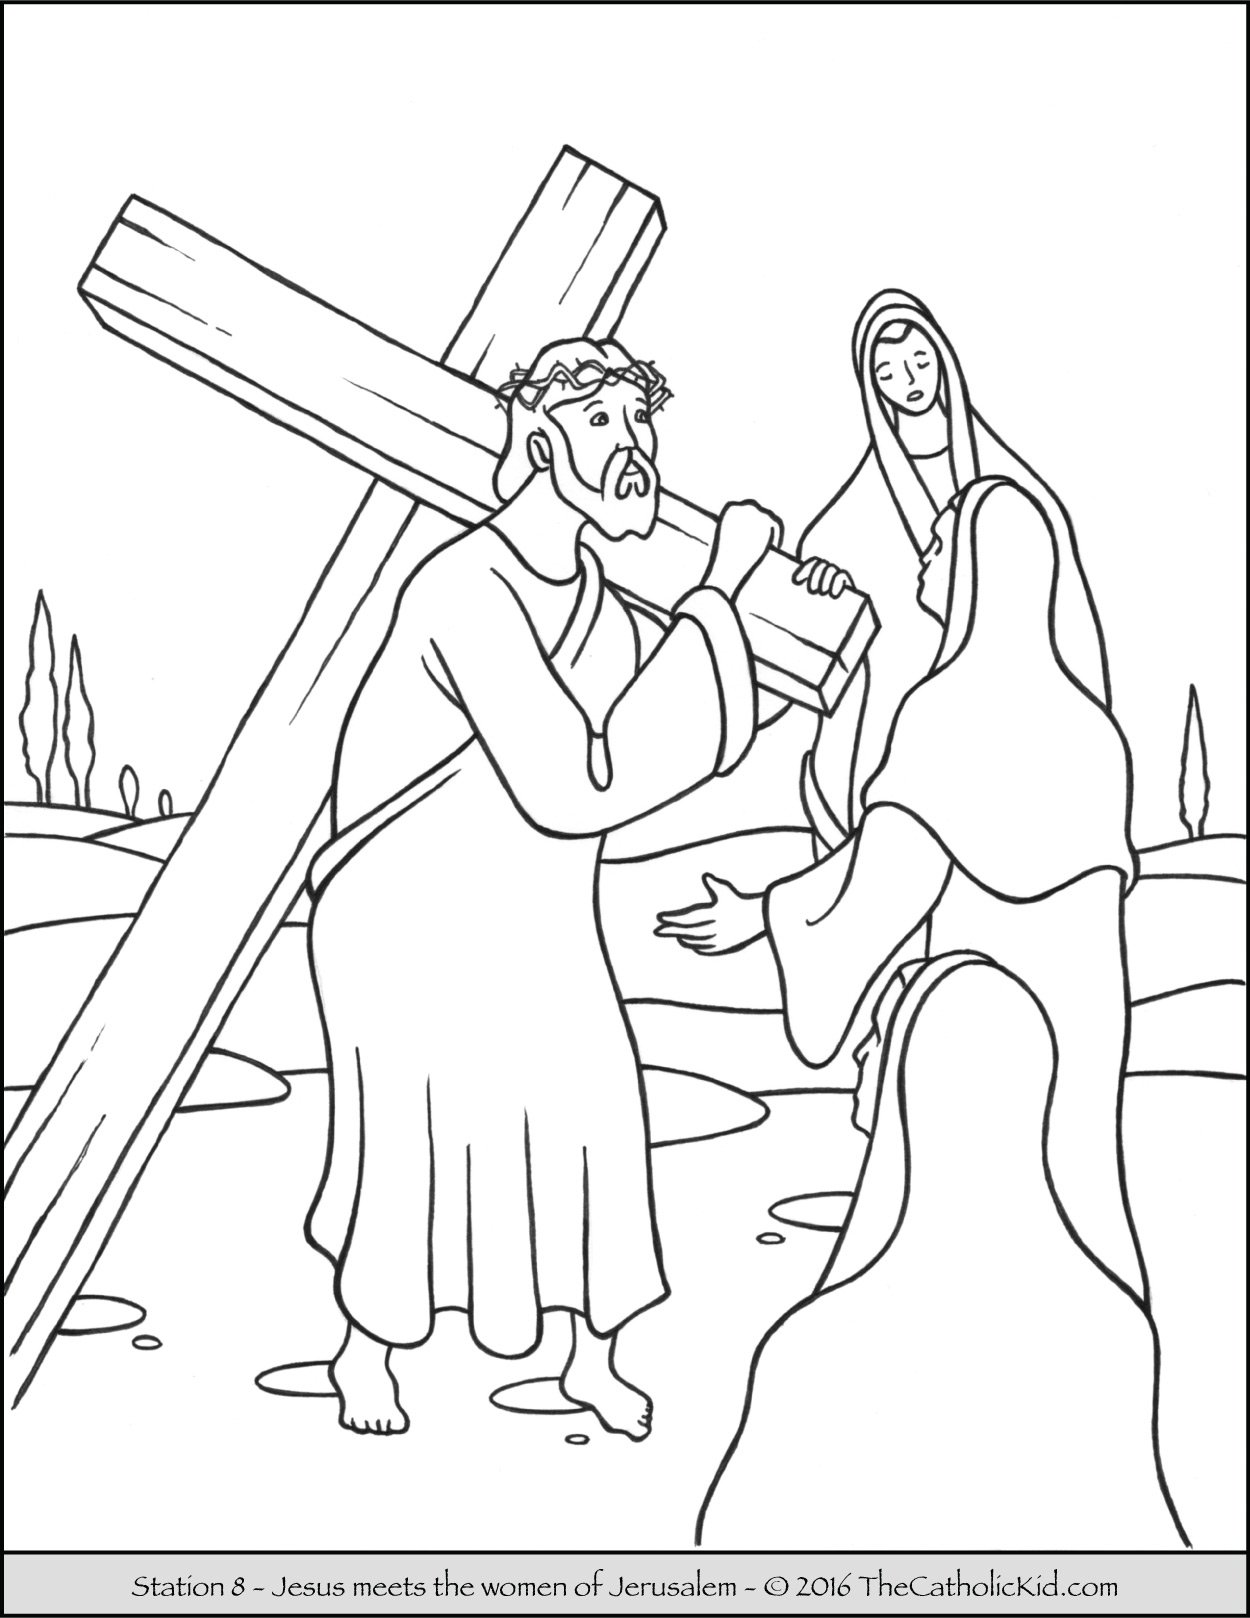 Stations Of The Cross Coloring Pages Captivating Stations Of The Cross Coloring Pages  The Catholic Kid Inspiration Design